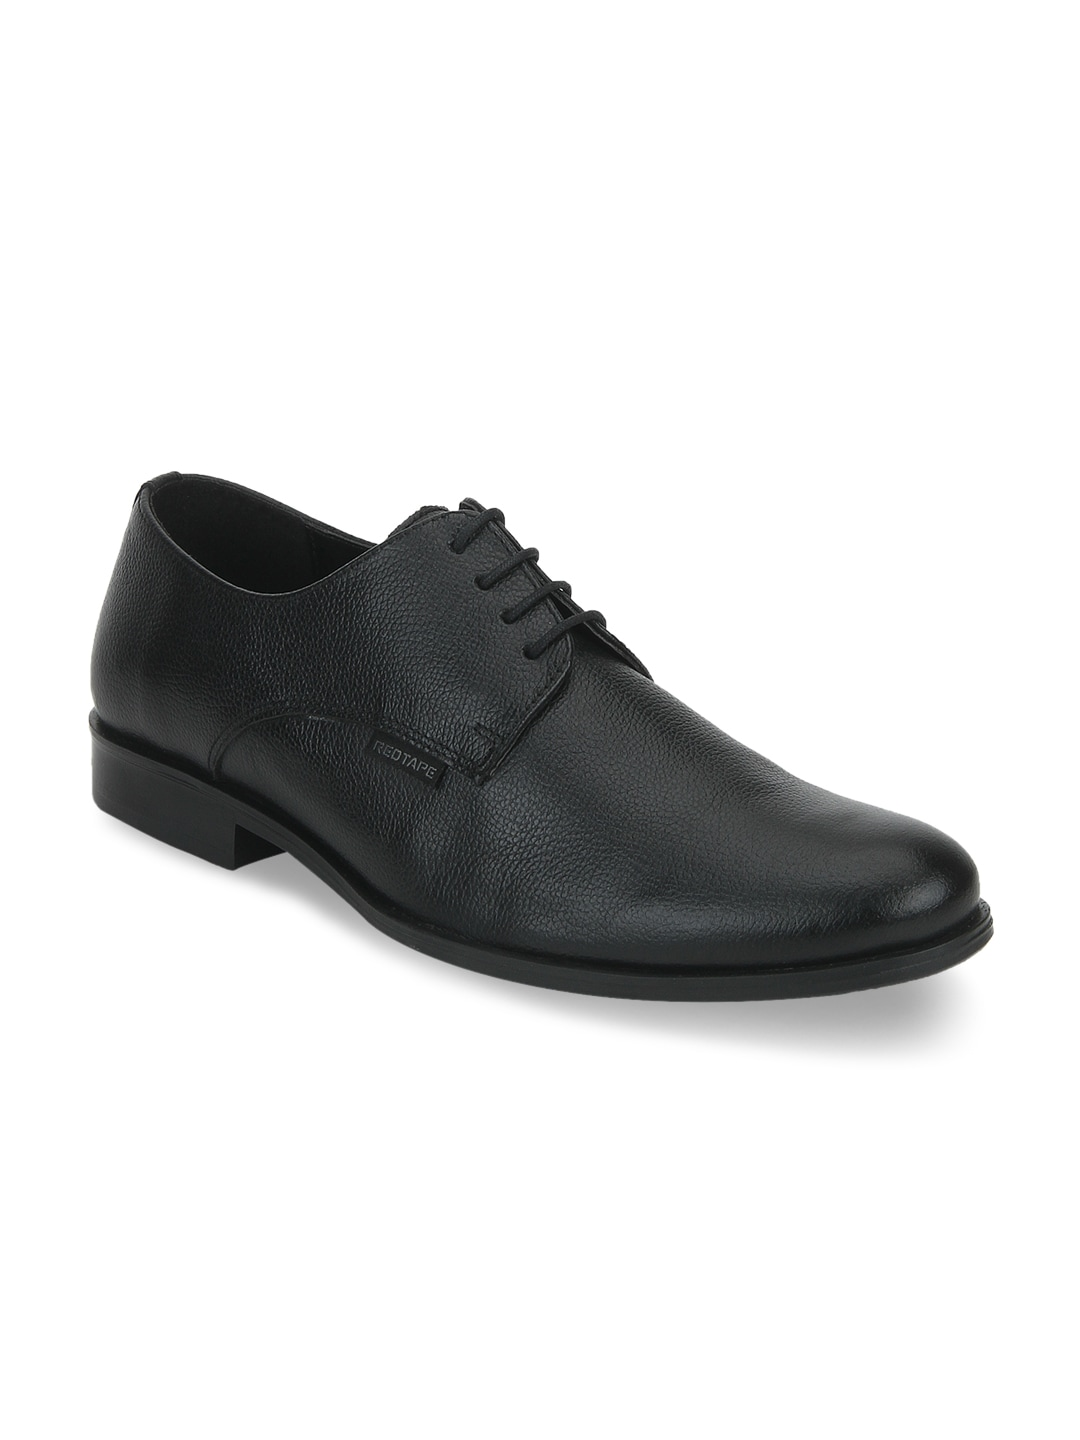 Buy Red Tape Black Textured Leather Derby's Shoes At Best Price